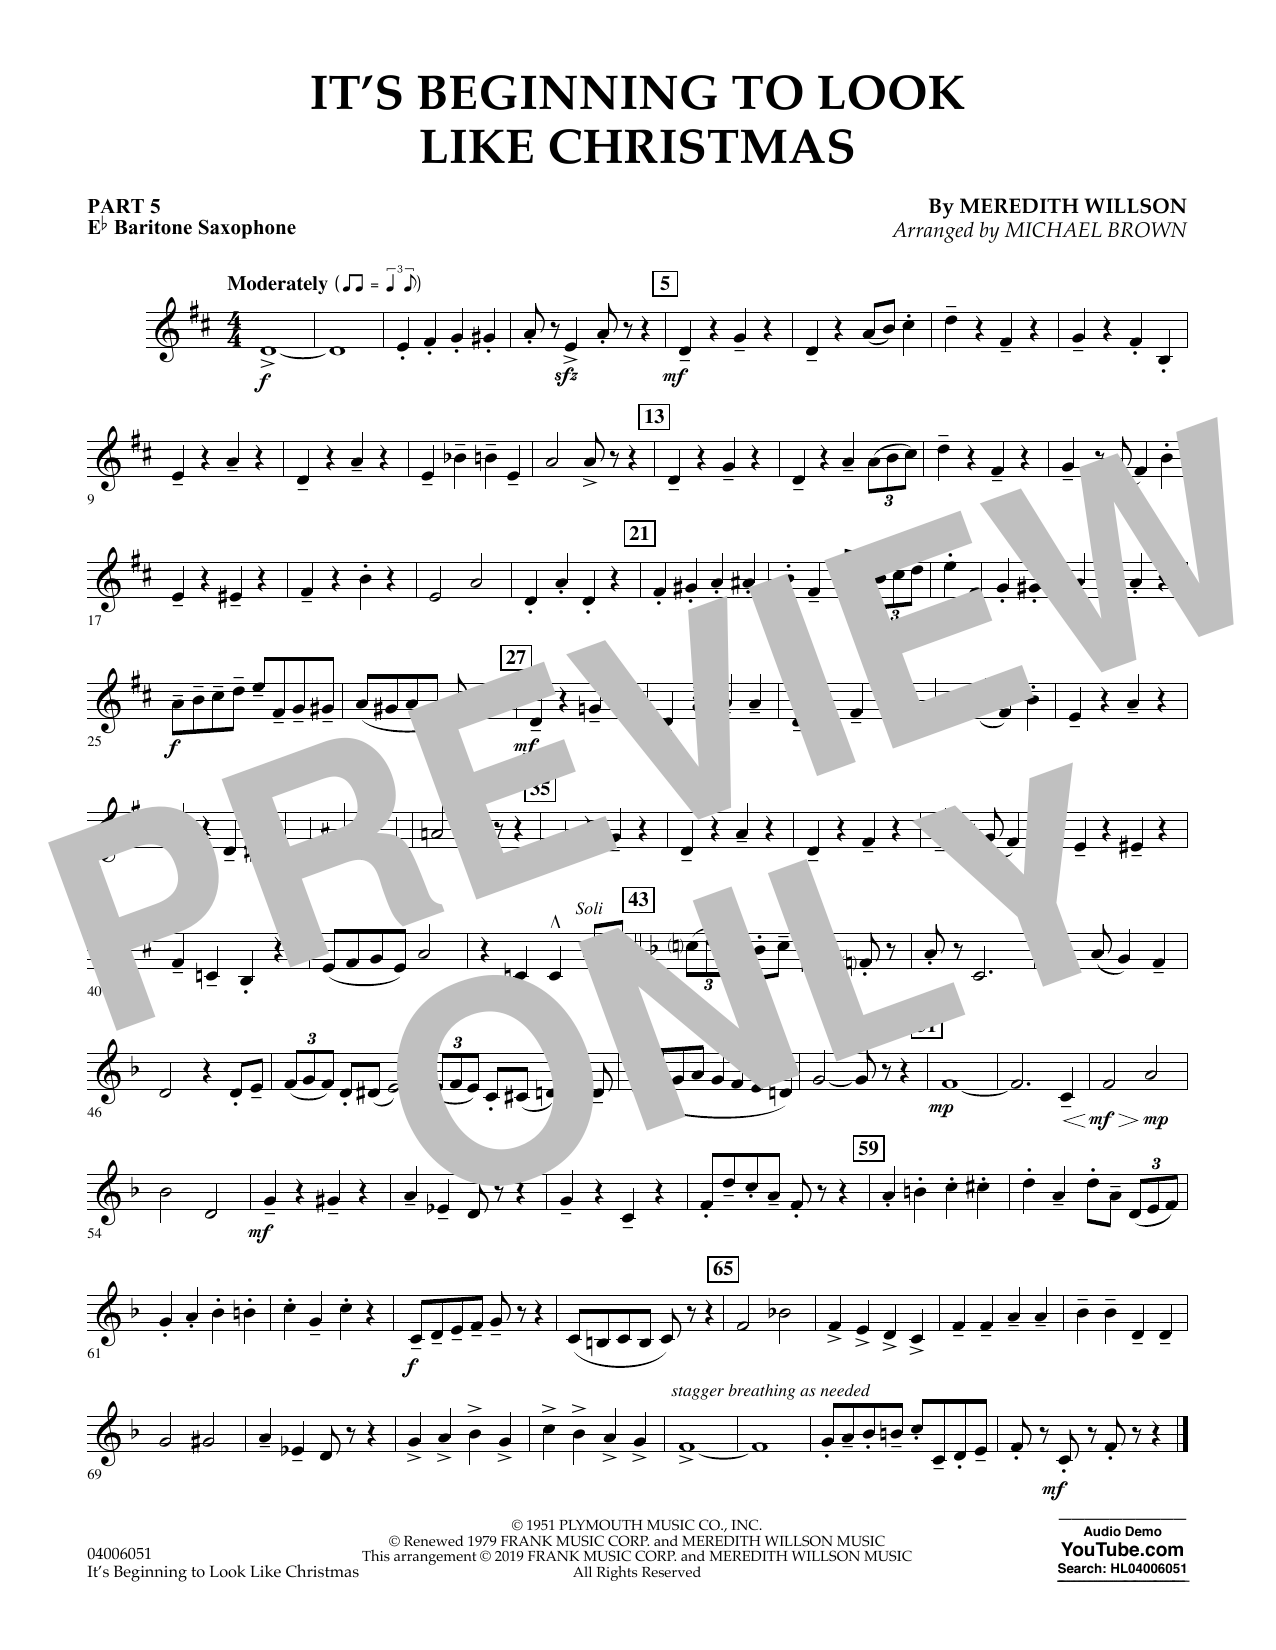 It's Beginning to Look Like Christmas (arr. Michael Brown) - Pt.5 - Eb Baritone Saxophone (Concert Band: Flex-Band)